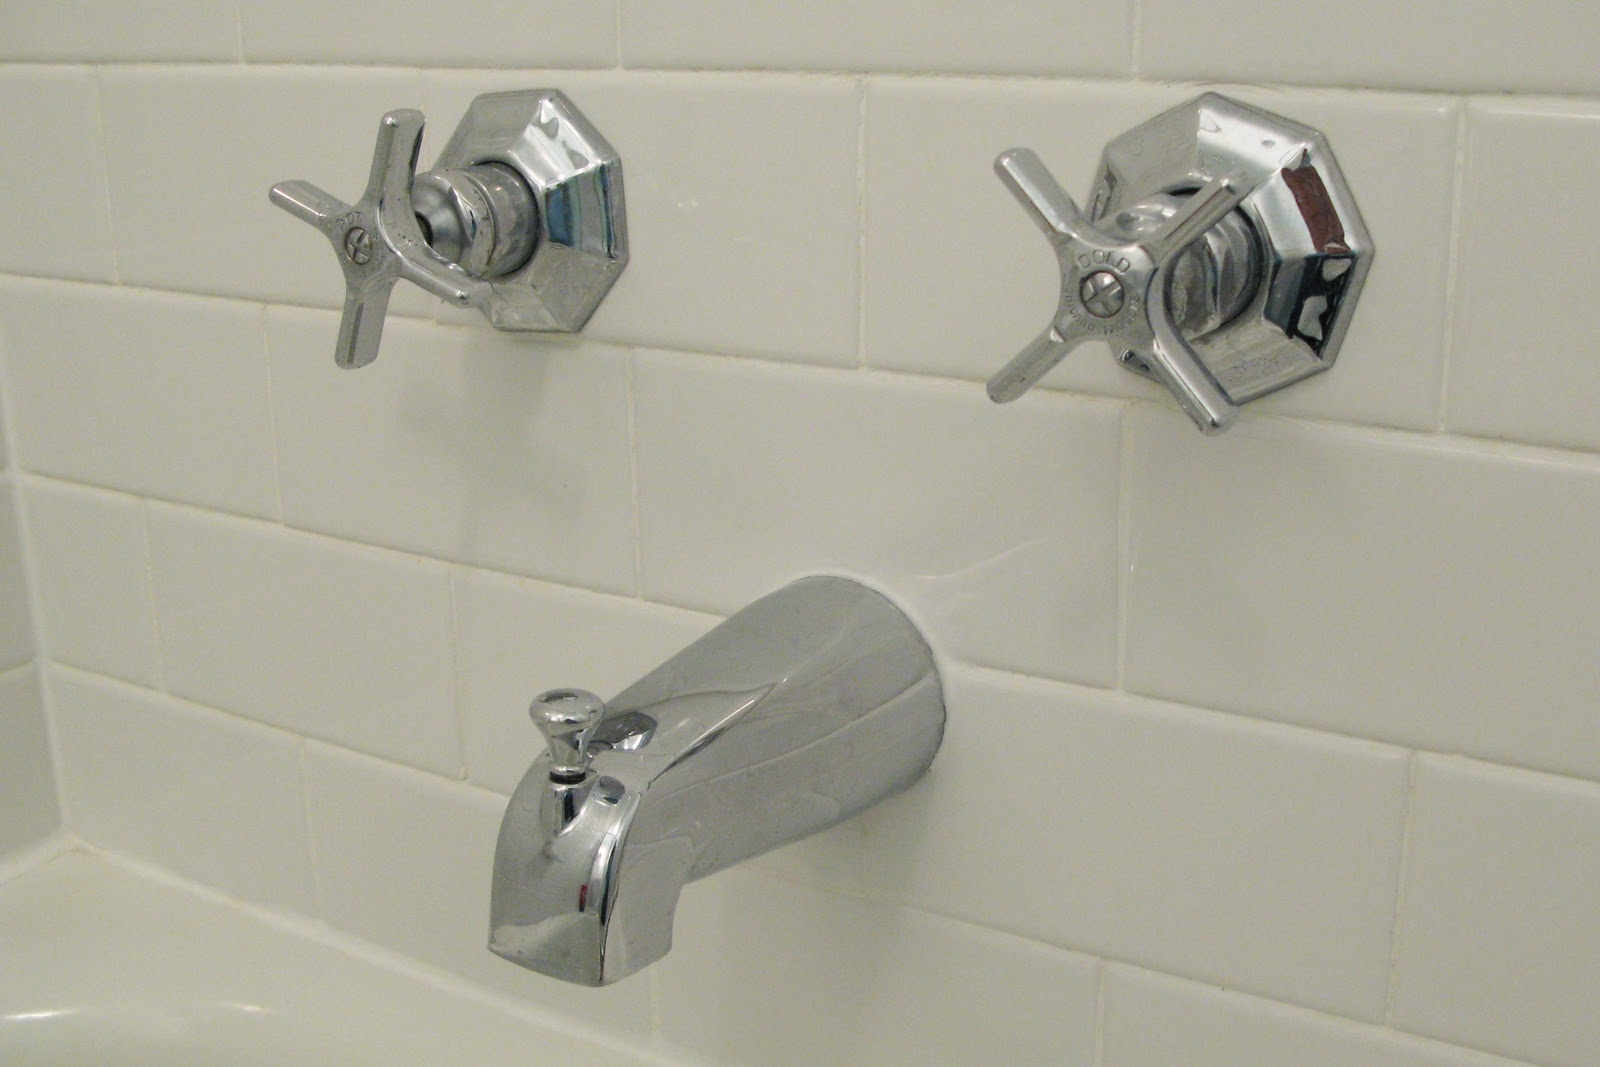 love the vintage style of the tub faucet and tried to duplicate it ...